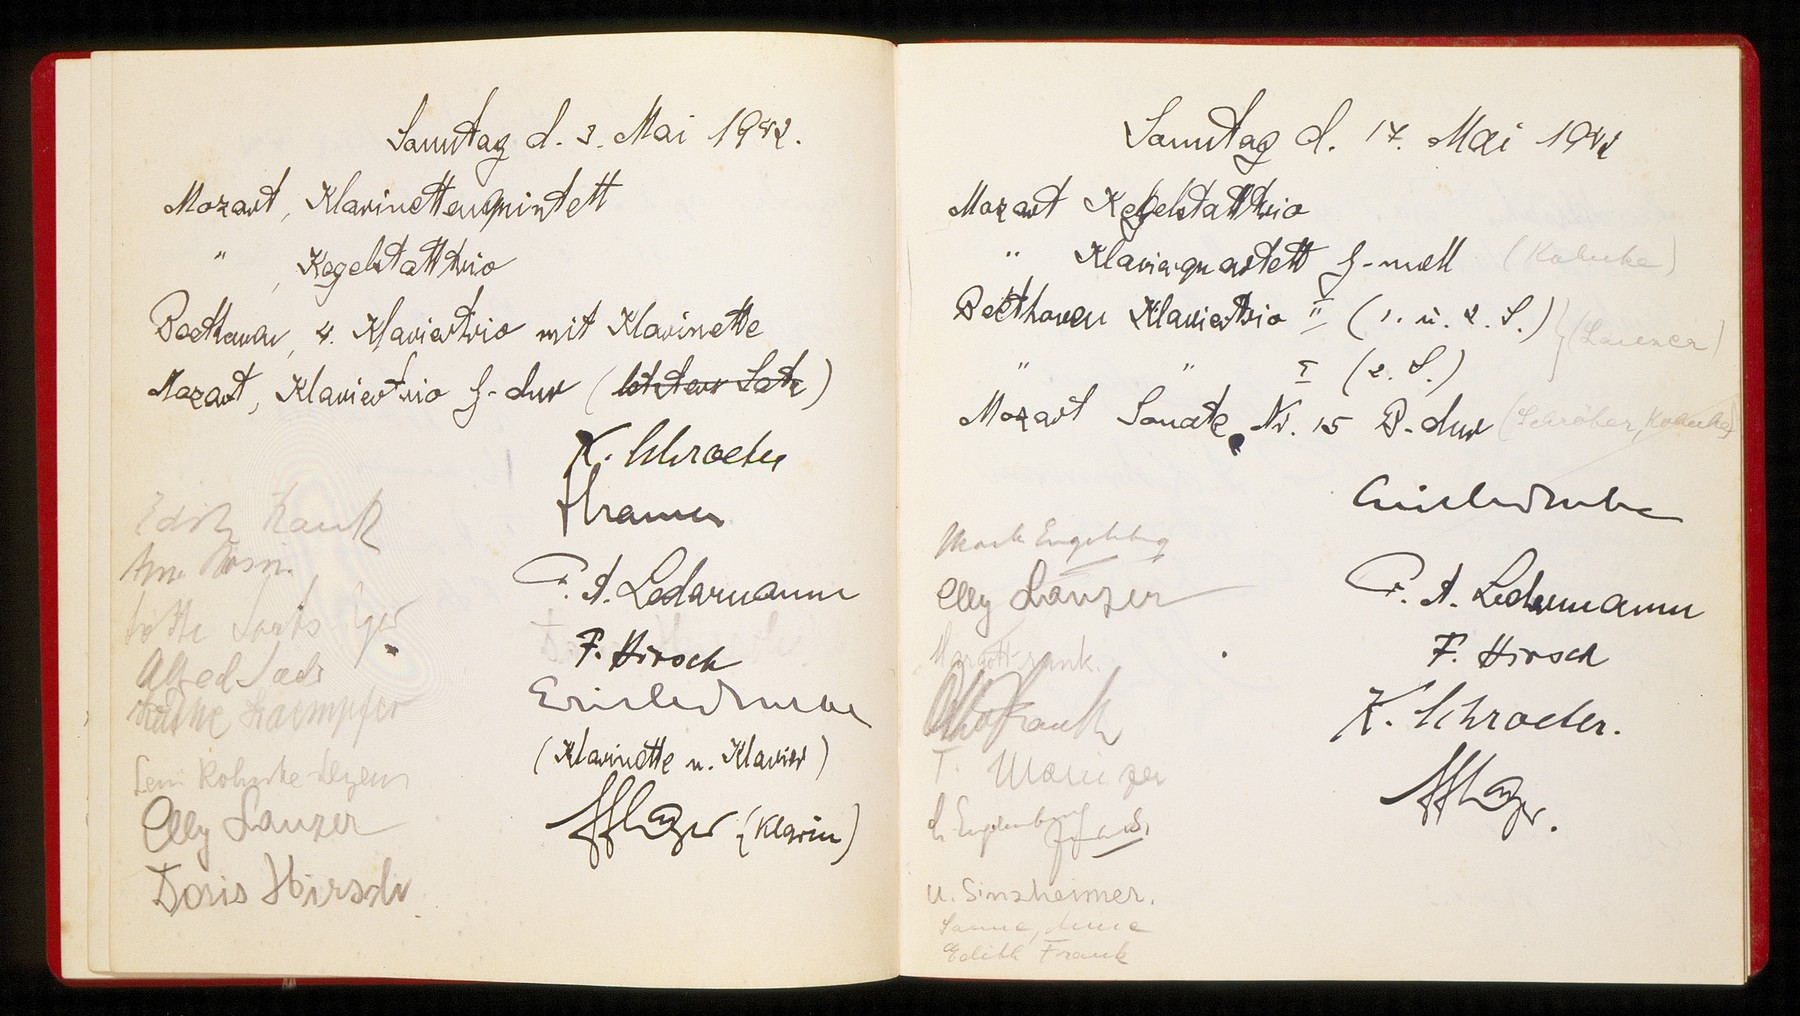 An open page of a guest book belonging to the Ledermann family which includes the signatures of Otto, Edith, and Margot Frank. The page is dated May 17, 1942 and records attendance at a chamber music concert in the Ledermann home in Amsterdam.